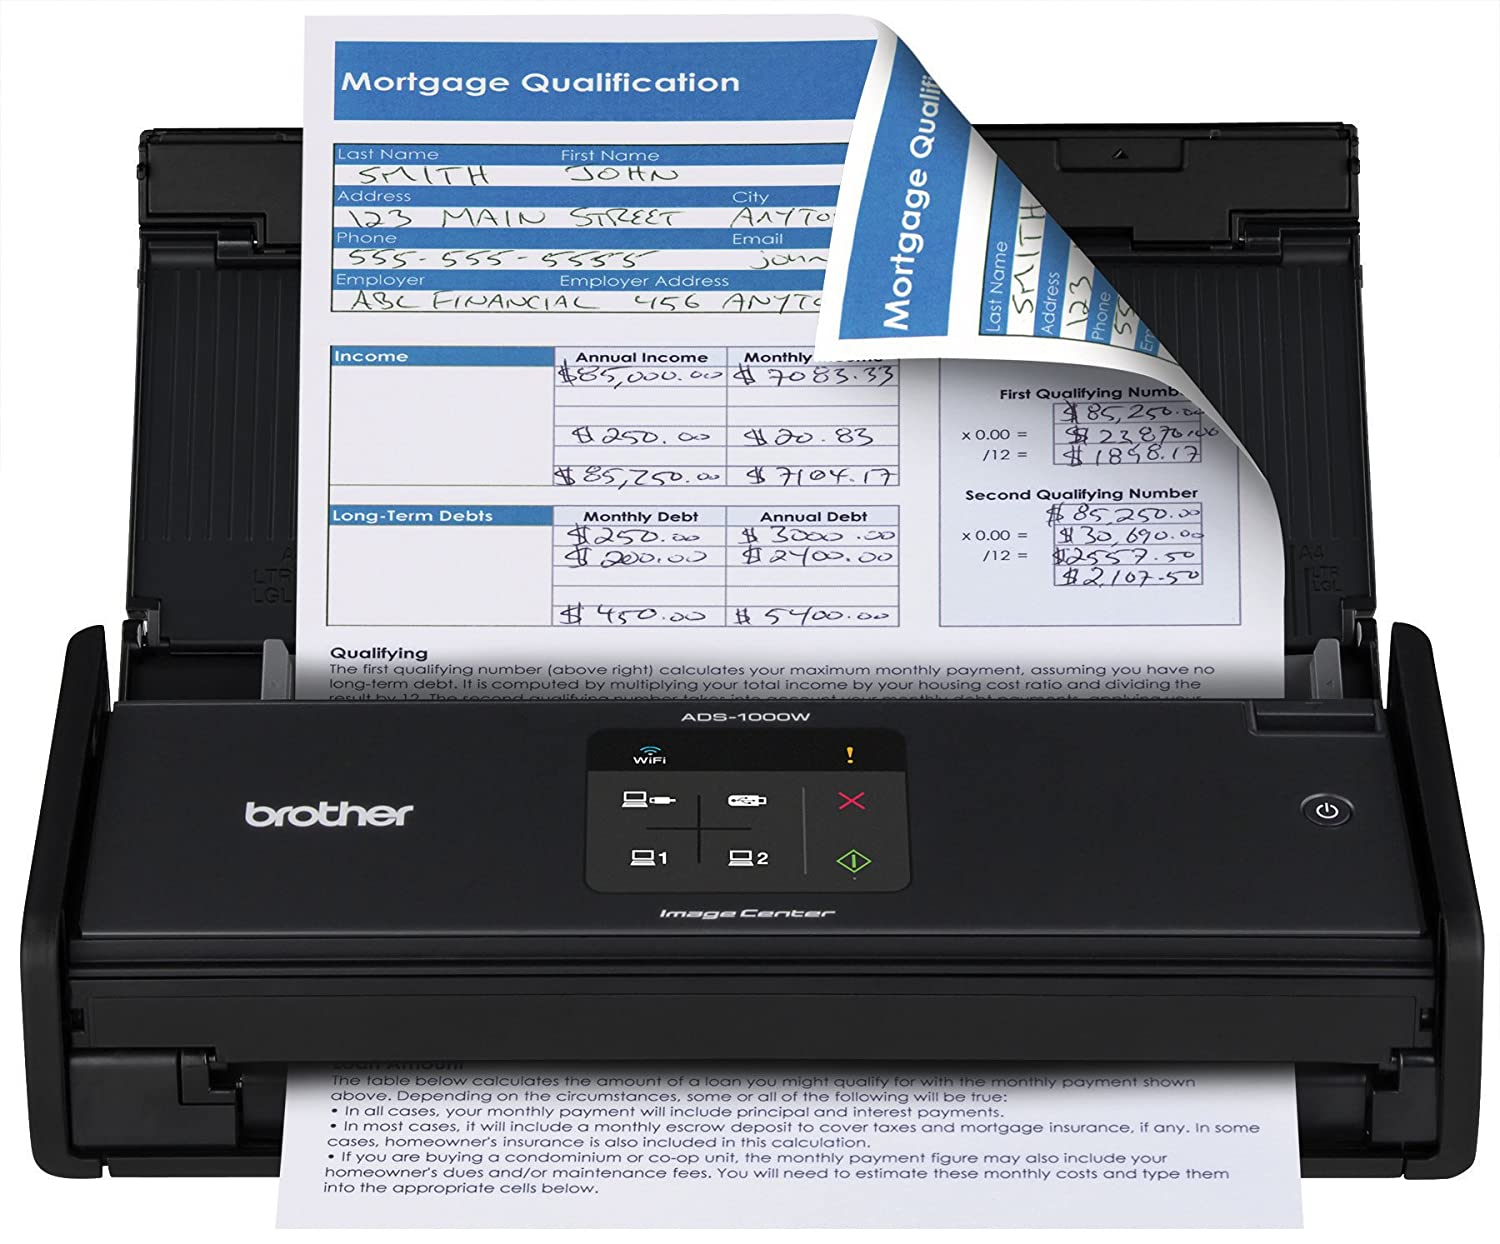 Brother ADS1000W Compact Color Desktop Scanner with Duplex and Wireless Networking